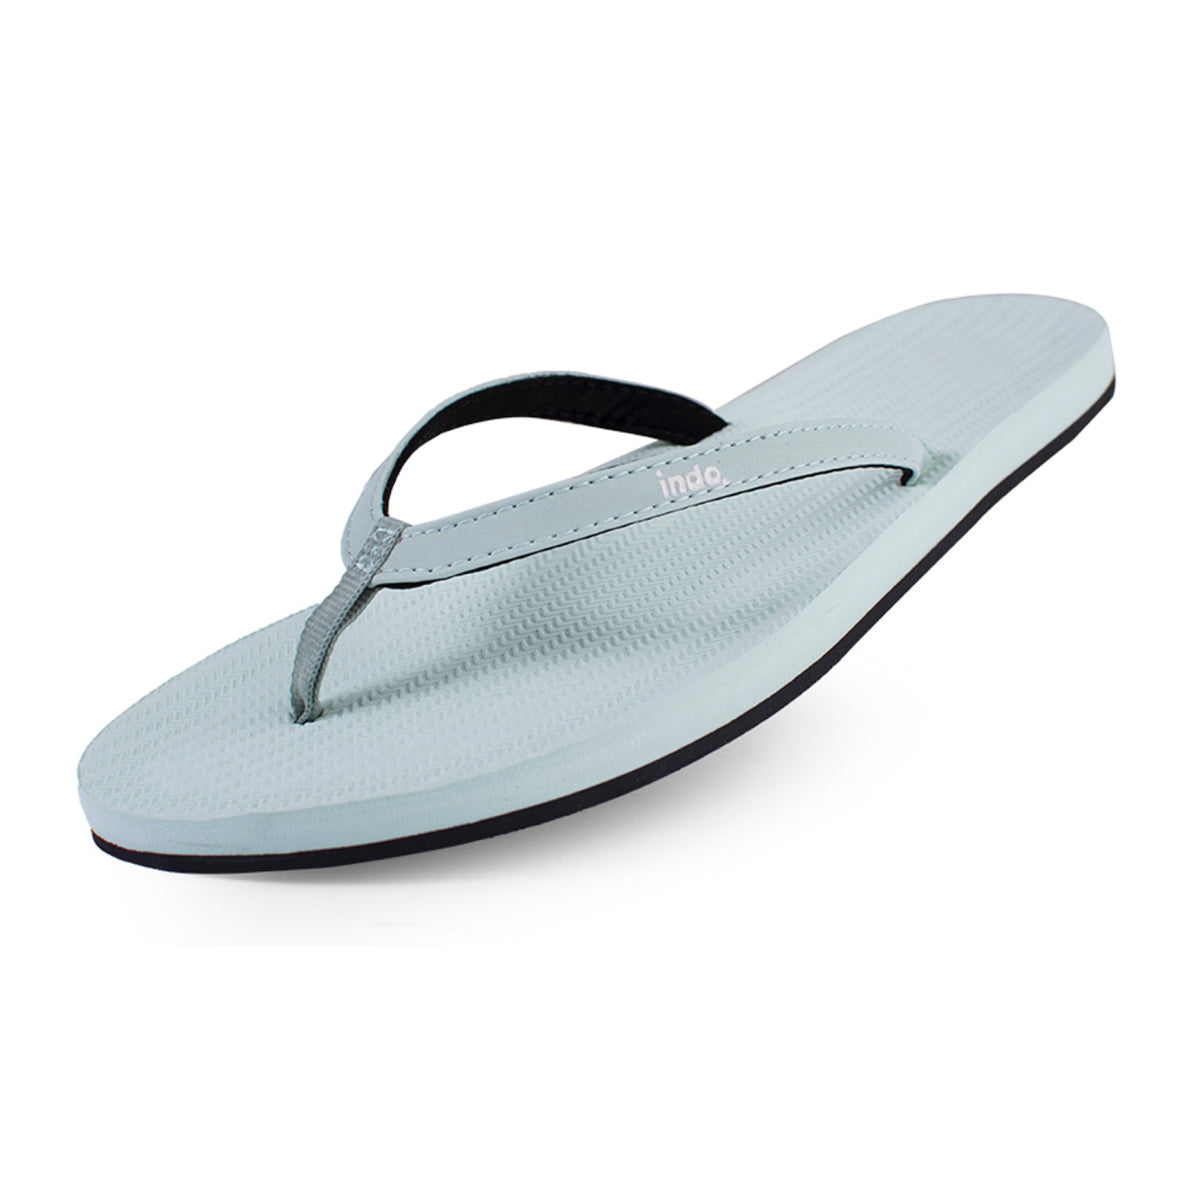 Women's Flip Flops Light Leaf - Lightweight, durable, waterproof, comfortable. Sustainably made vegan shoes using natural rubber and recycled tires